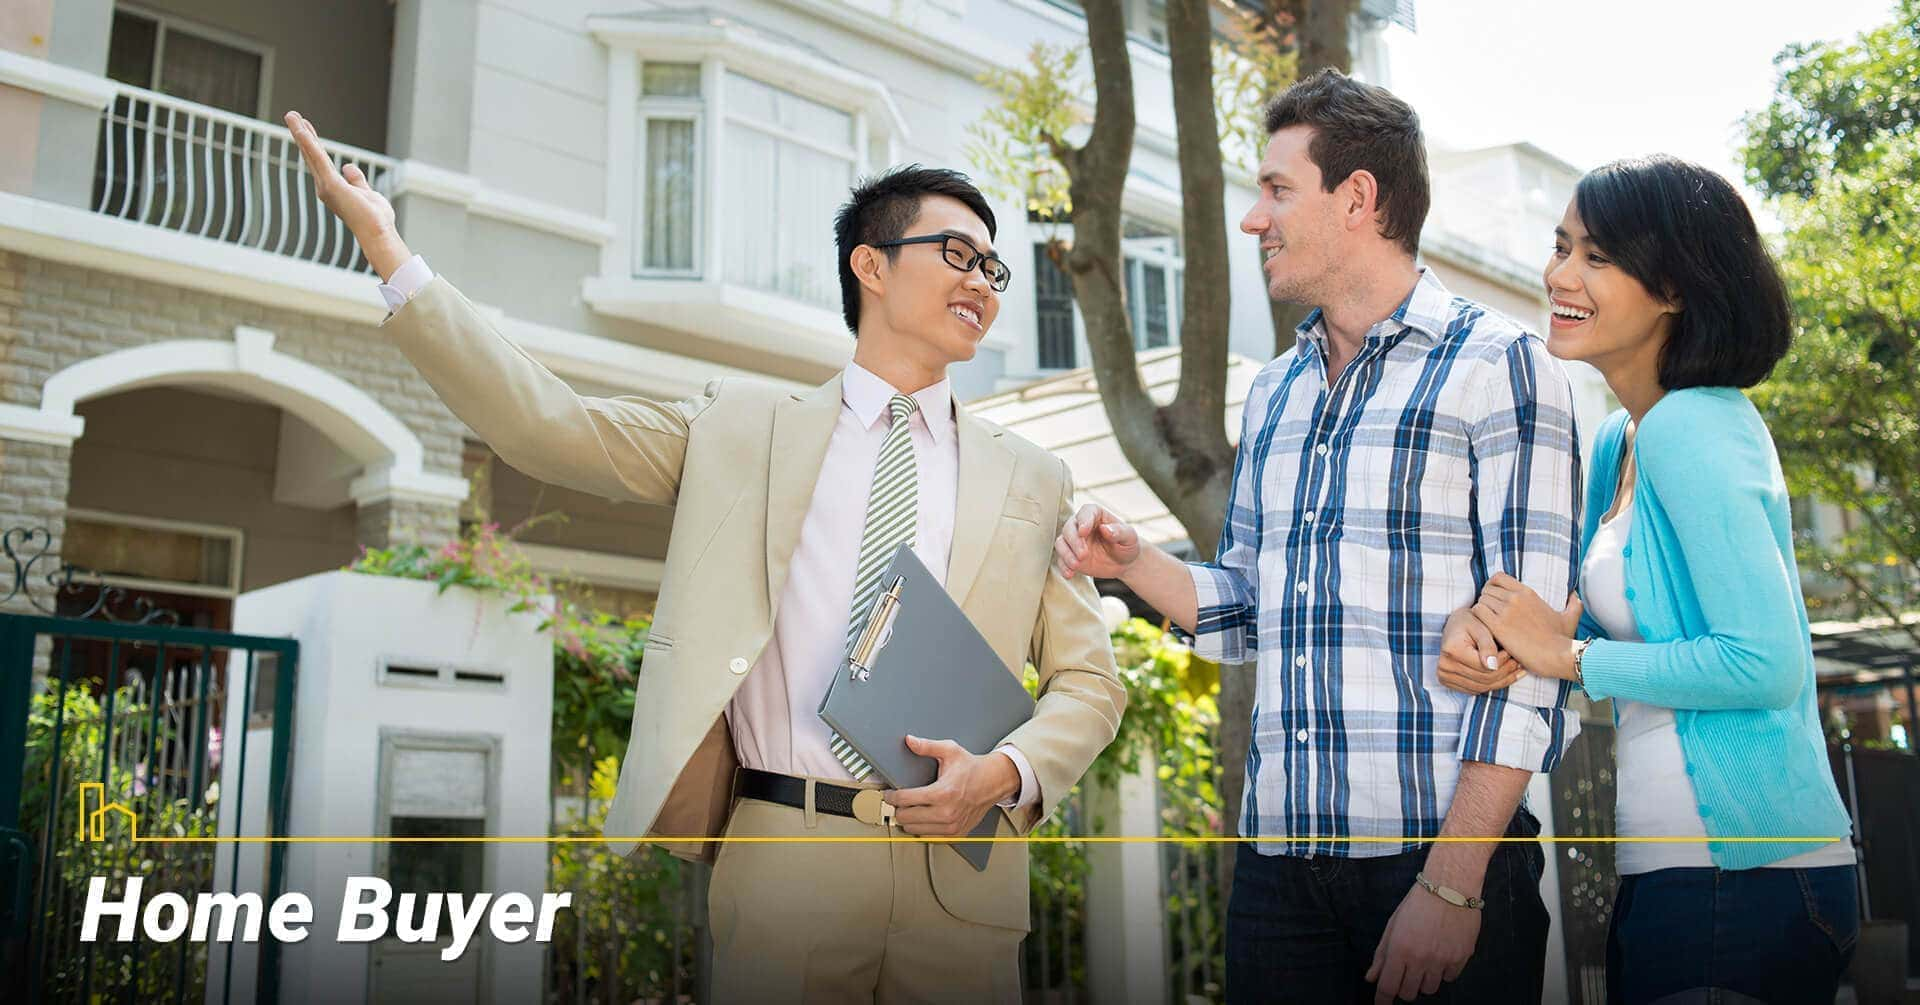 Home Buyer, precious memories of your home